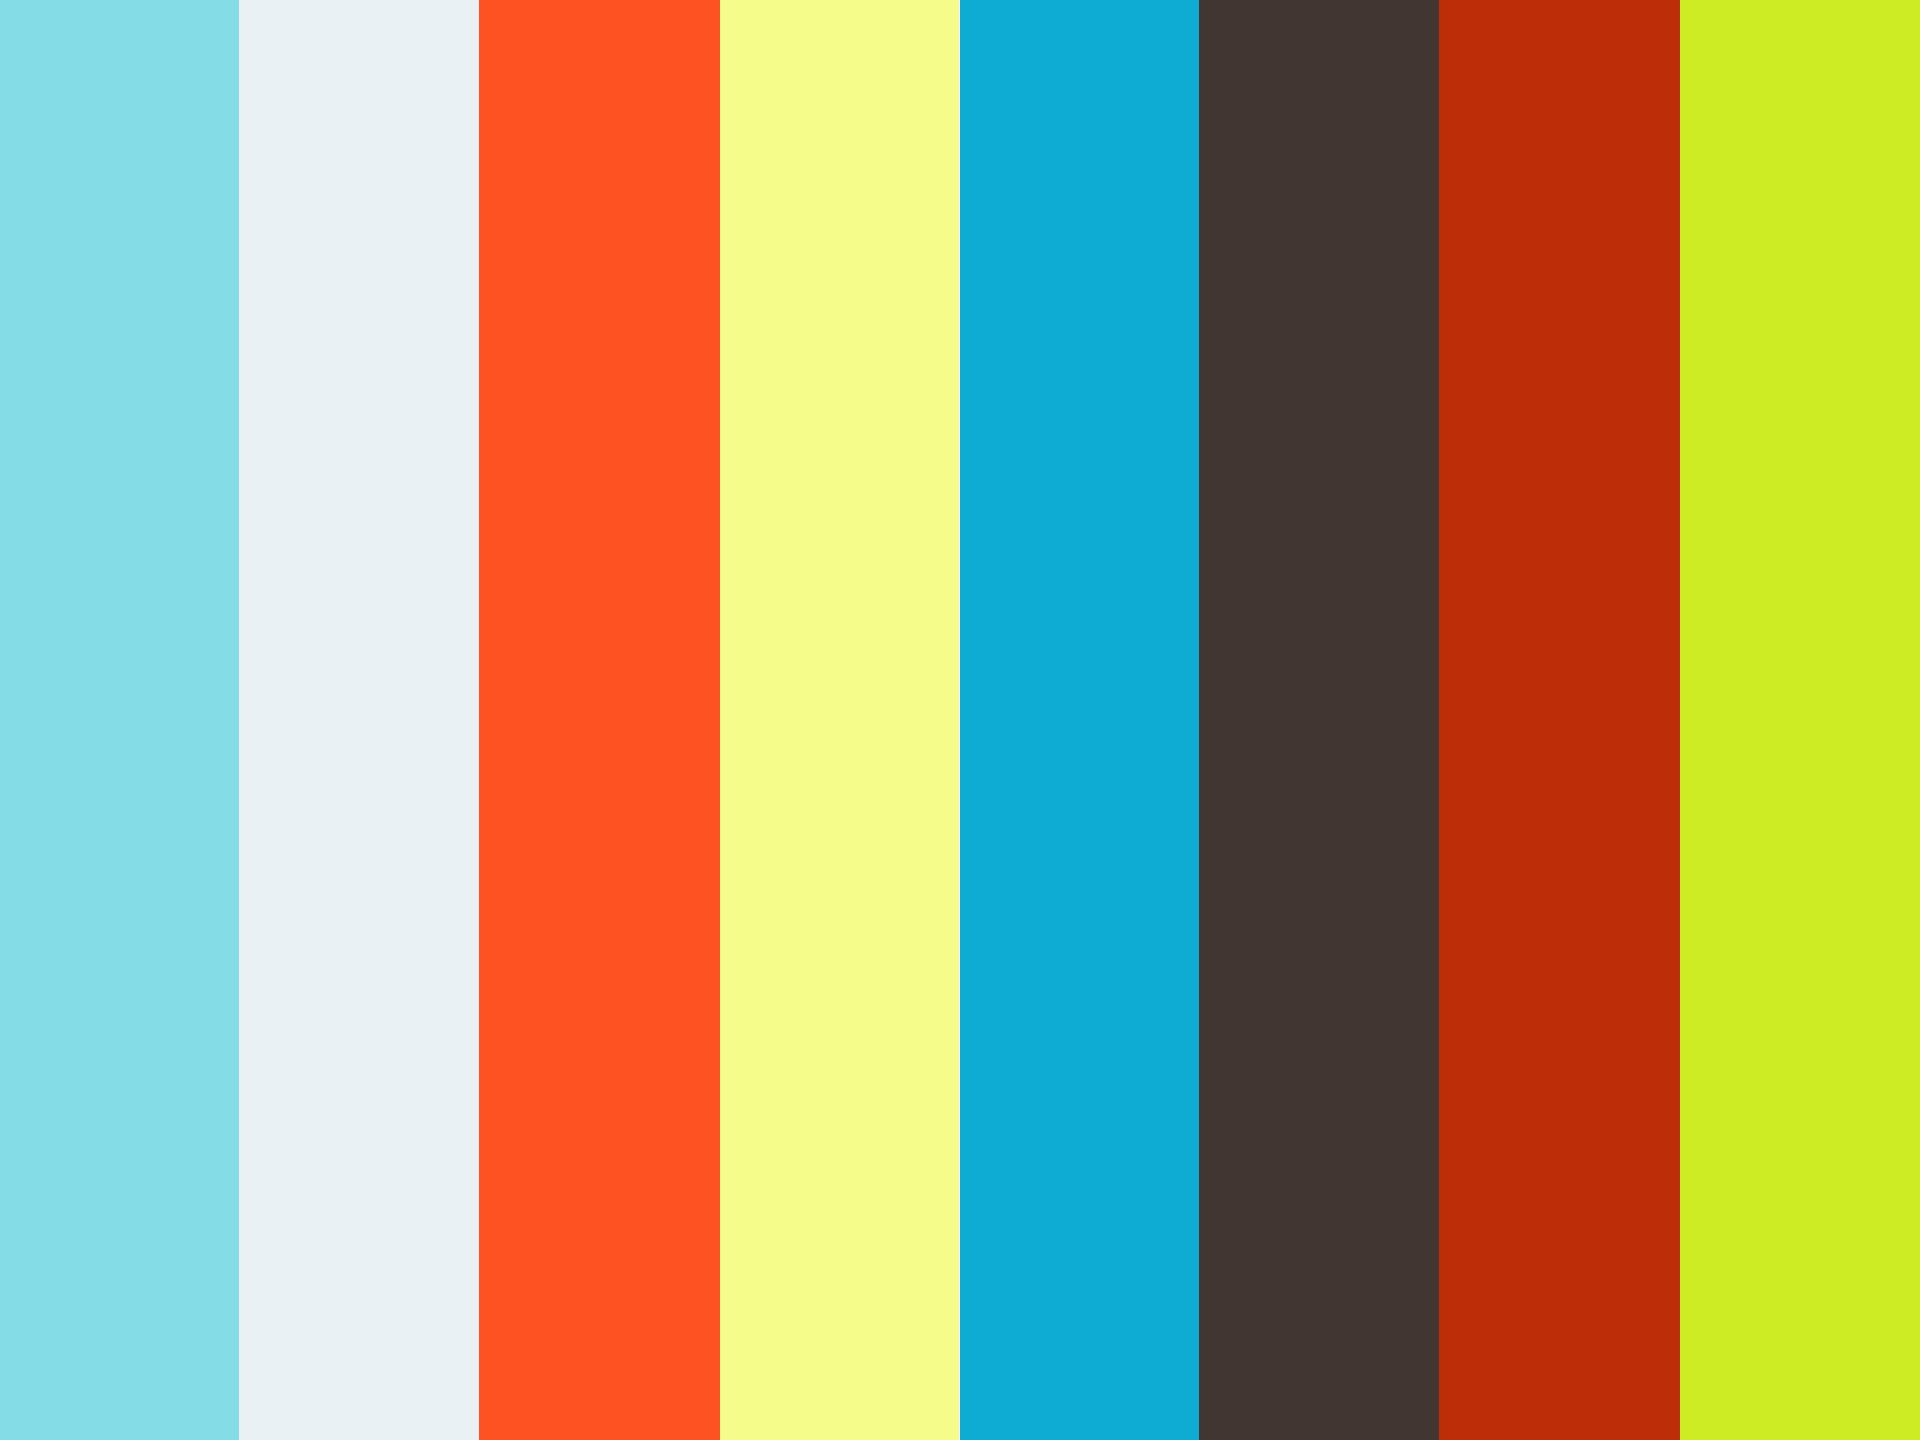 flapper3 Reel 2006 on Vimeo